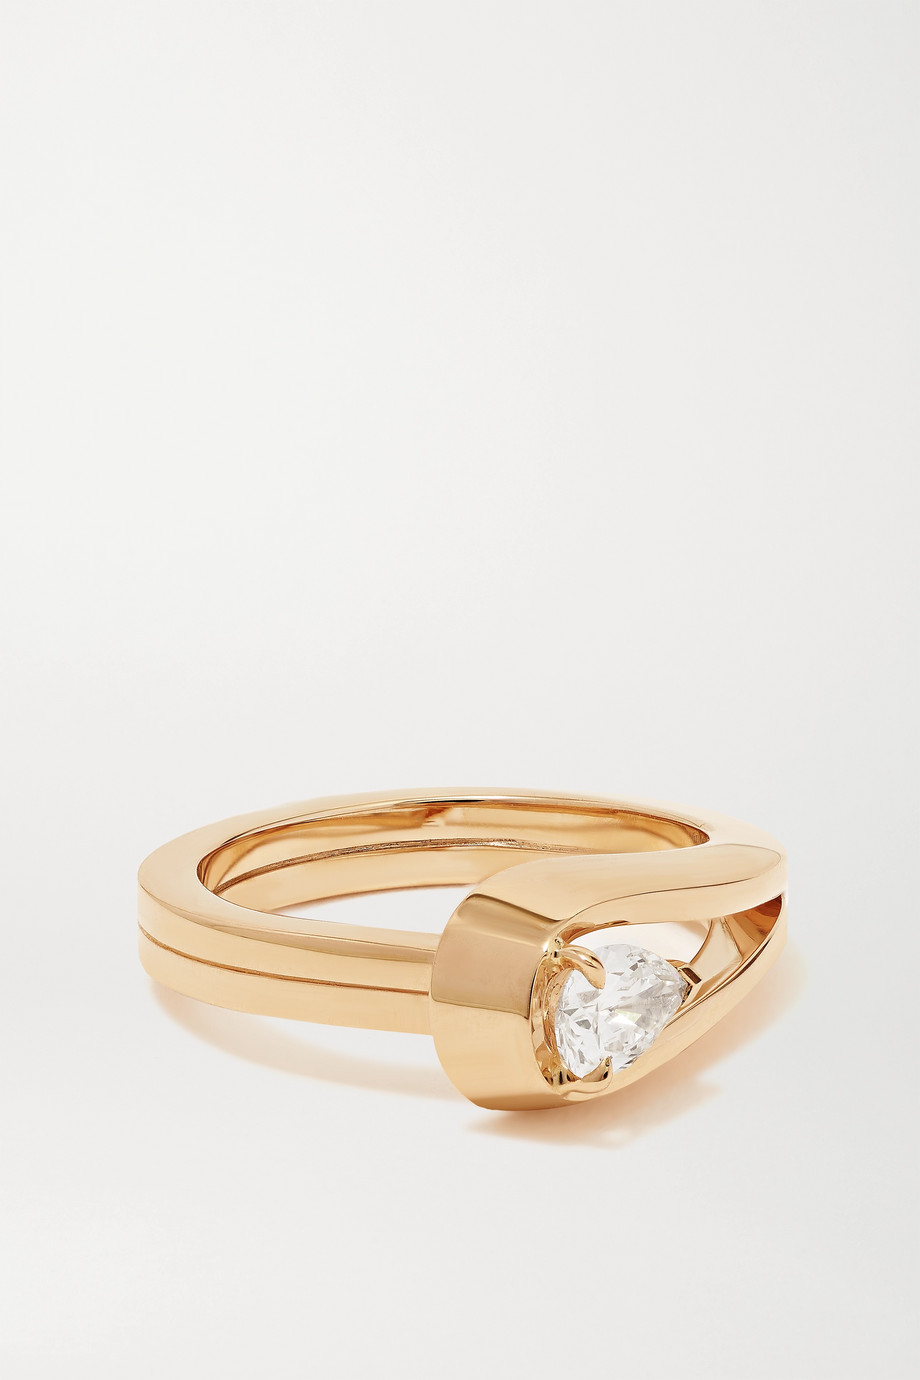 Repossi Serti Inversé 18-karat rose gold diamond ring